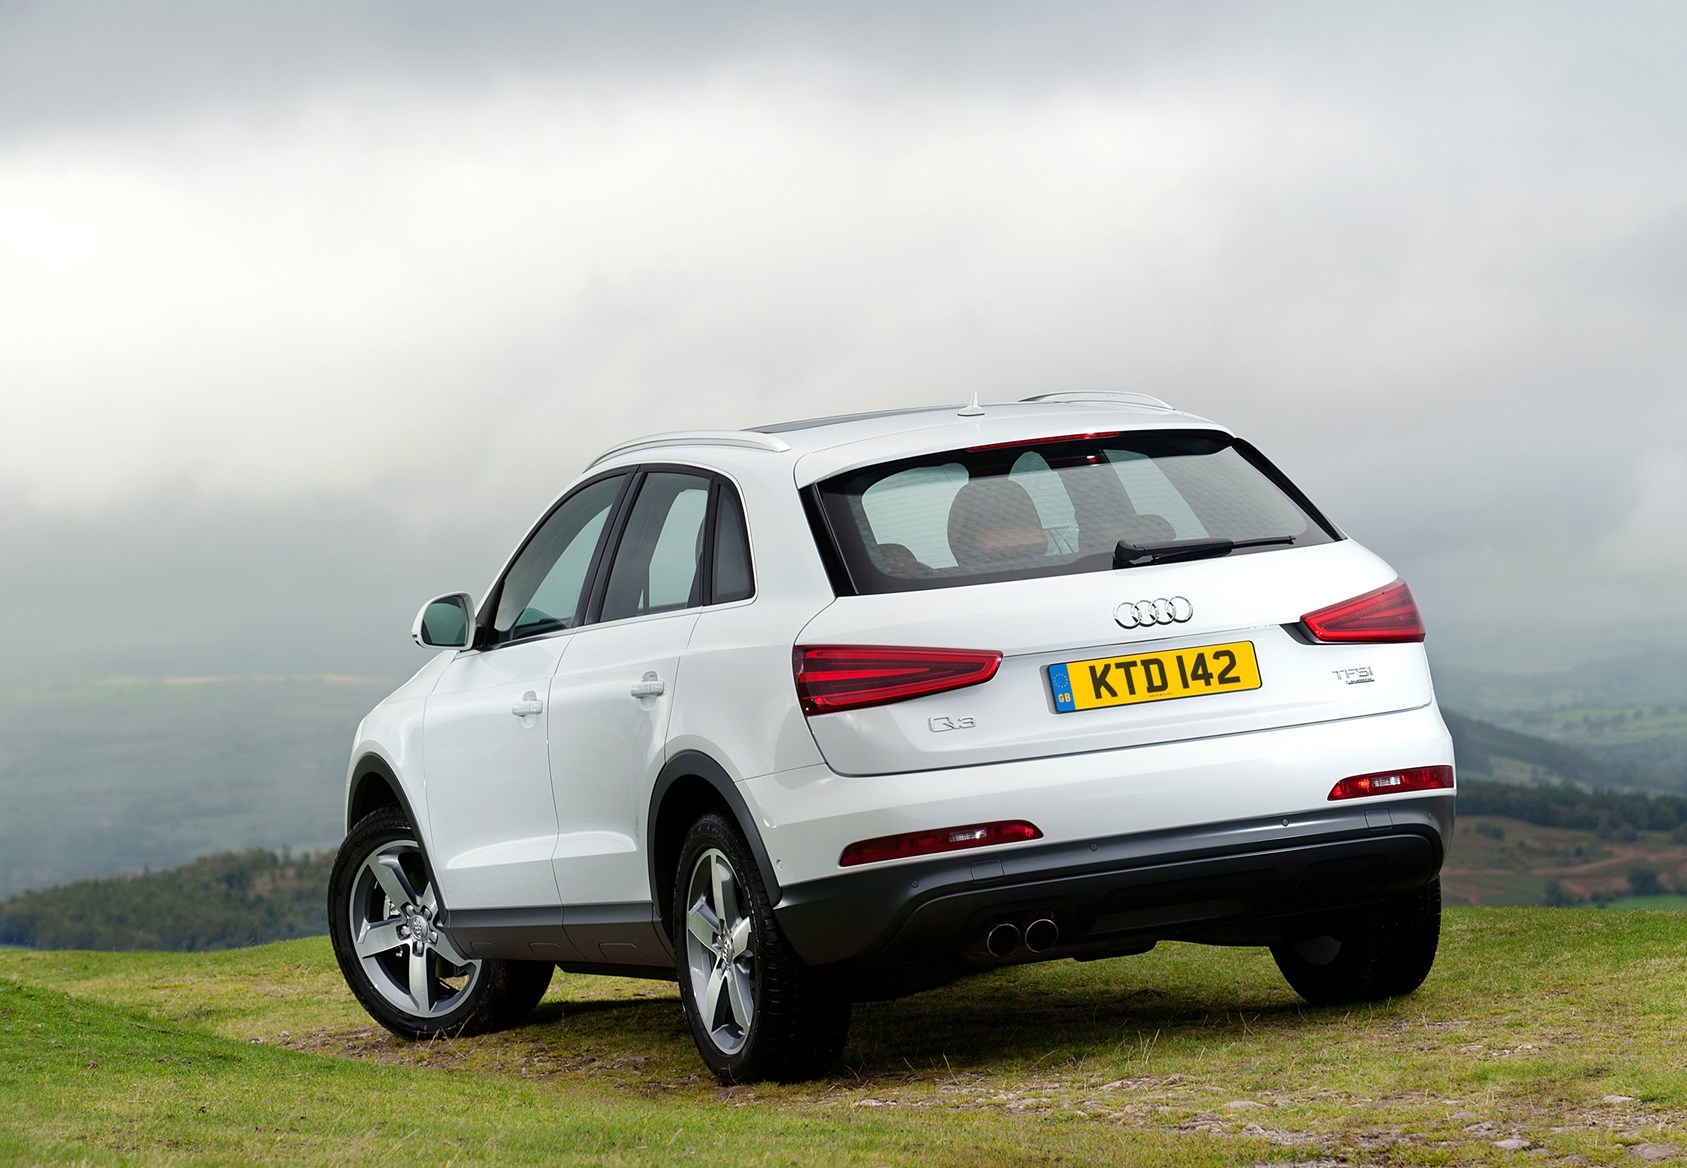 audi q3 estate 2011 features equipment and accessories parkers. Black Bedroom Furniture Sets. Home Design Ideas